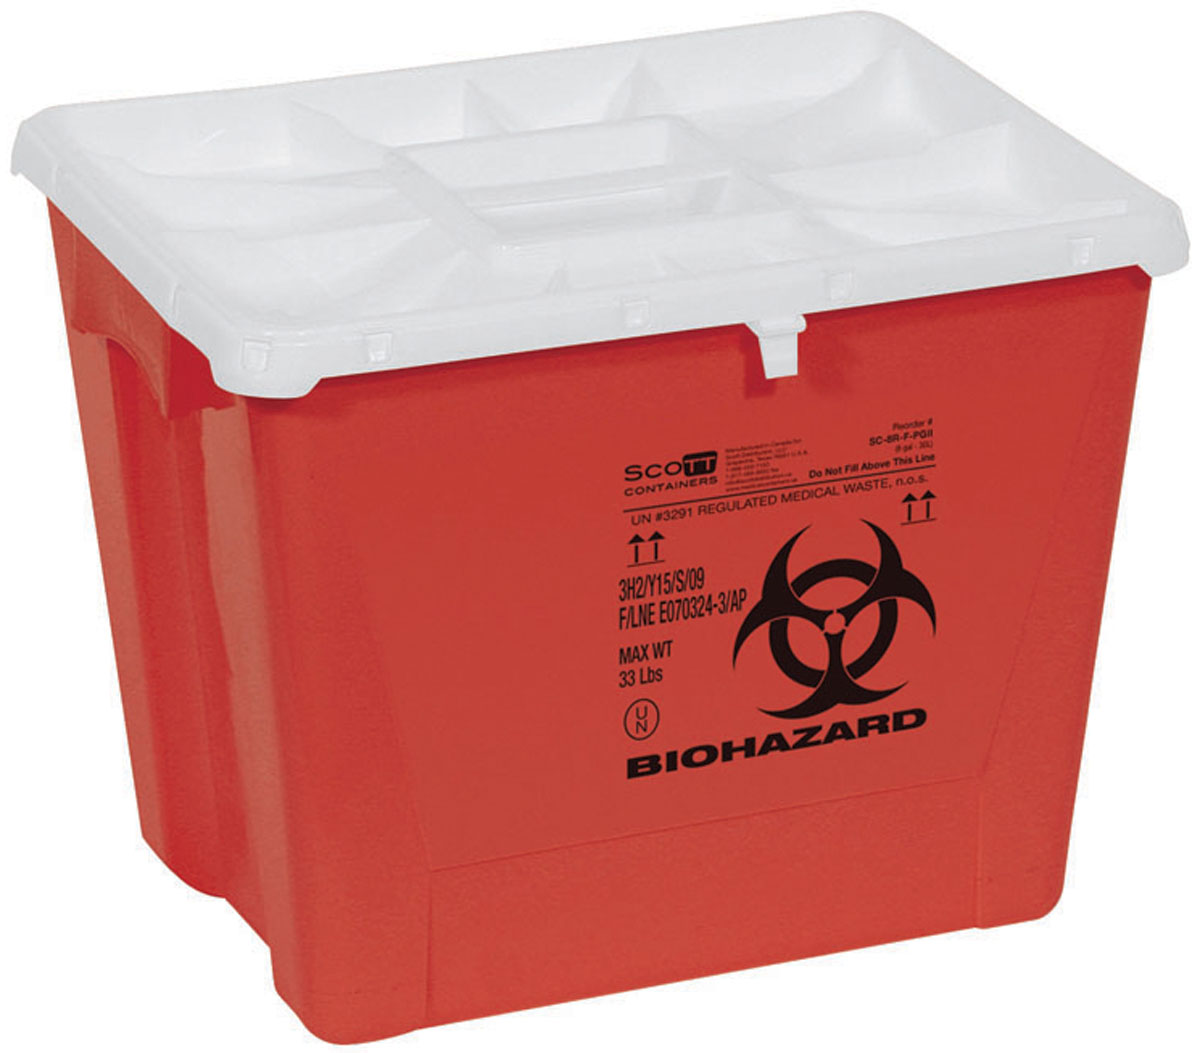 CONTAINER,SHARPS,18 GAL,RED,FLAT,PGII,7 EA/CS